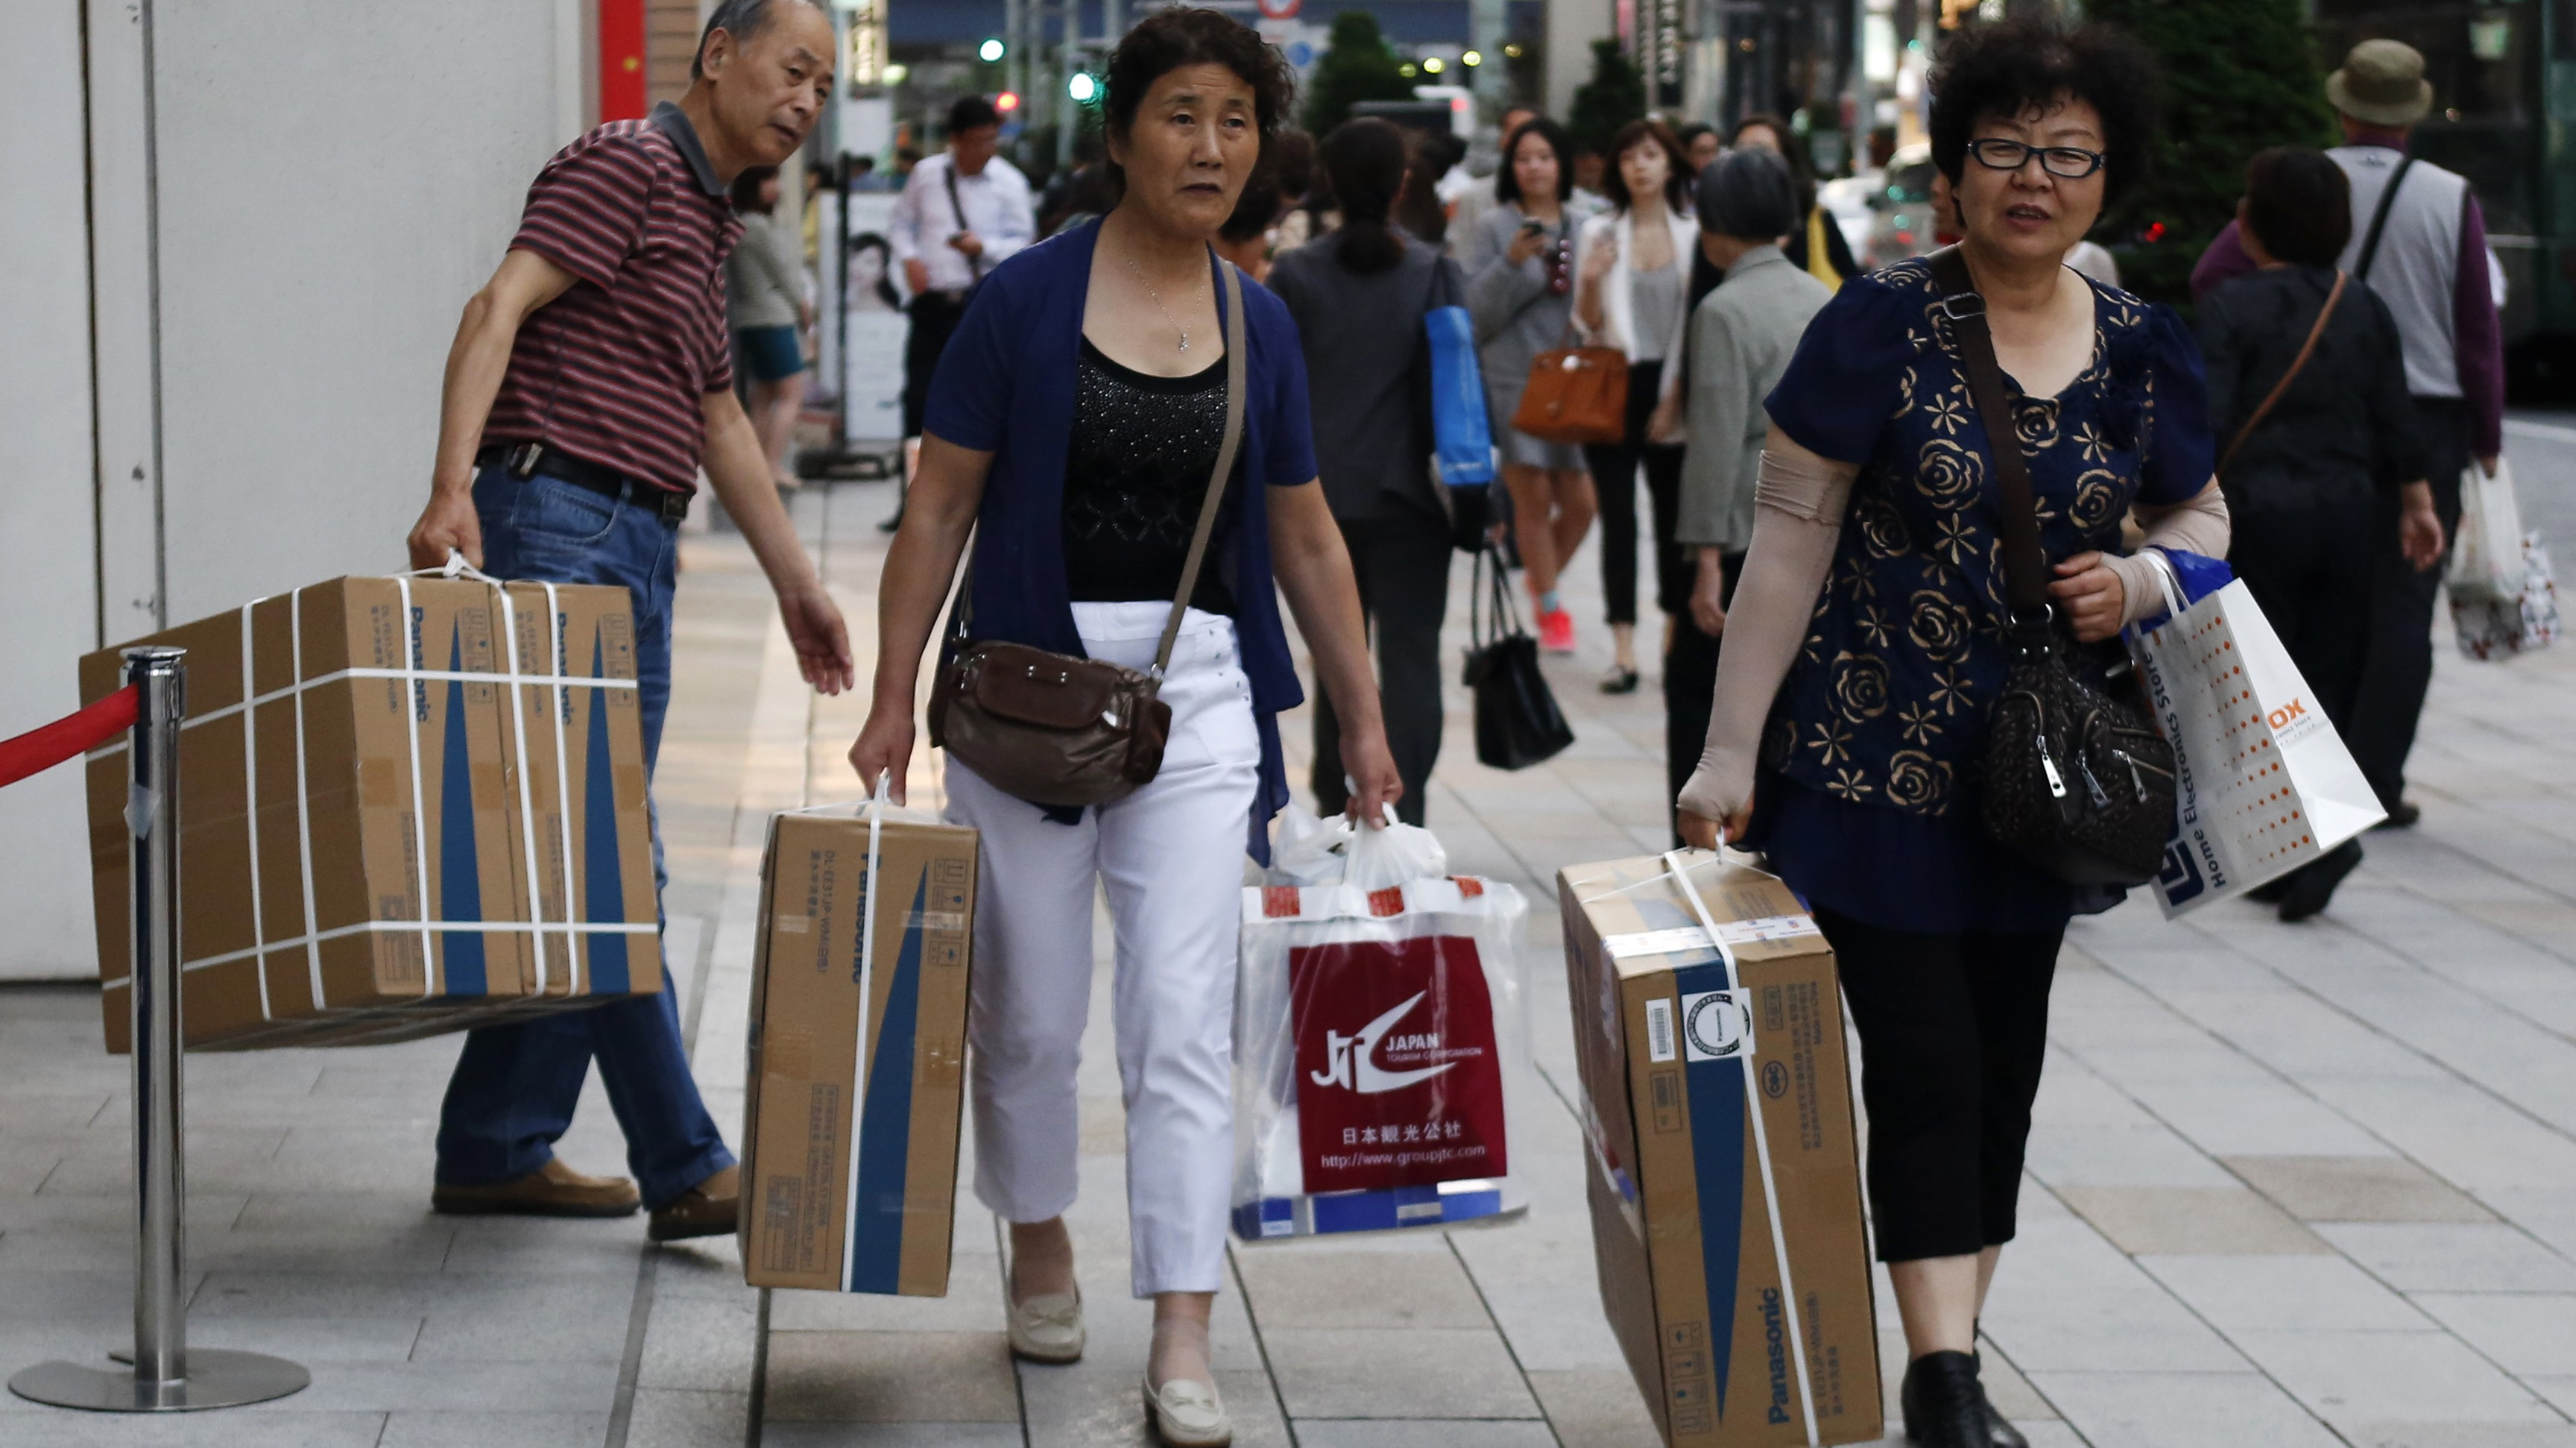 Chinese tourists carry packages of Panasonic Corp's washlet along Tokyo's Ginza Shopping district May 16, 2014. In ageing Japan, retailers are waking up to a hot new demographic: foreign visitors. Tourism contribution to the economy will take on increasing importance as Japan's population dwindles. Driven by government tourism promotions and lately a weaker yen, the number of inbound travellers has quietly doubled in the past decade to top 10 million for the first time last year. In 2013, they spent $14 billion on everything from powdered green tea to Prada handbags, to rare, red-coral rings. To match story JAPAN-RETAIL/TOURISM       Picture taken May 16, 2014. REUTERS/Yuya Shino (JAPAN - Tags: BUSINESS TRAVEL) - RTR3Q2SS